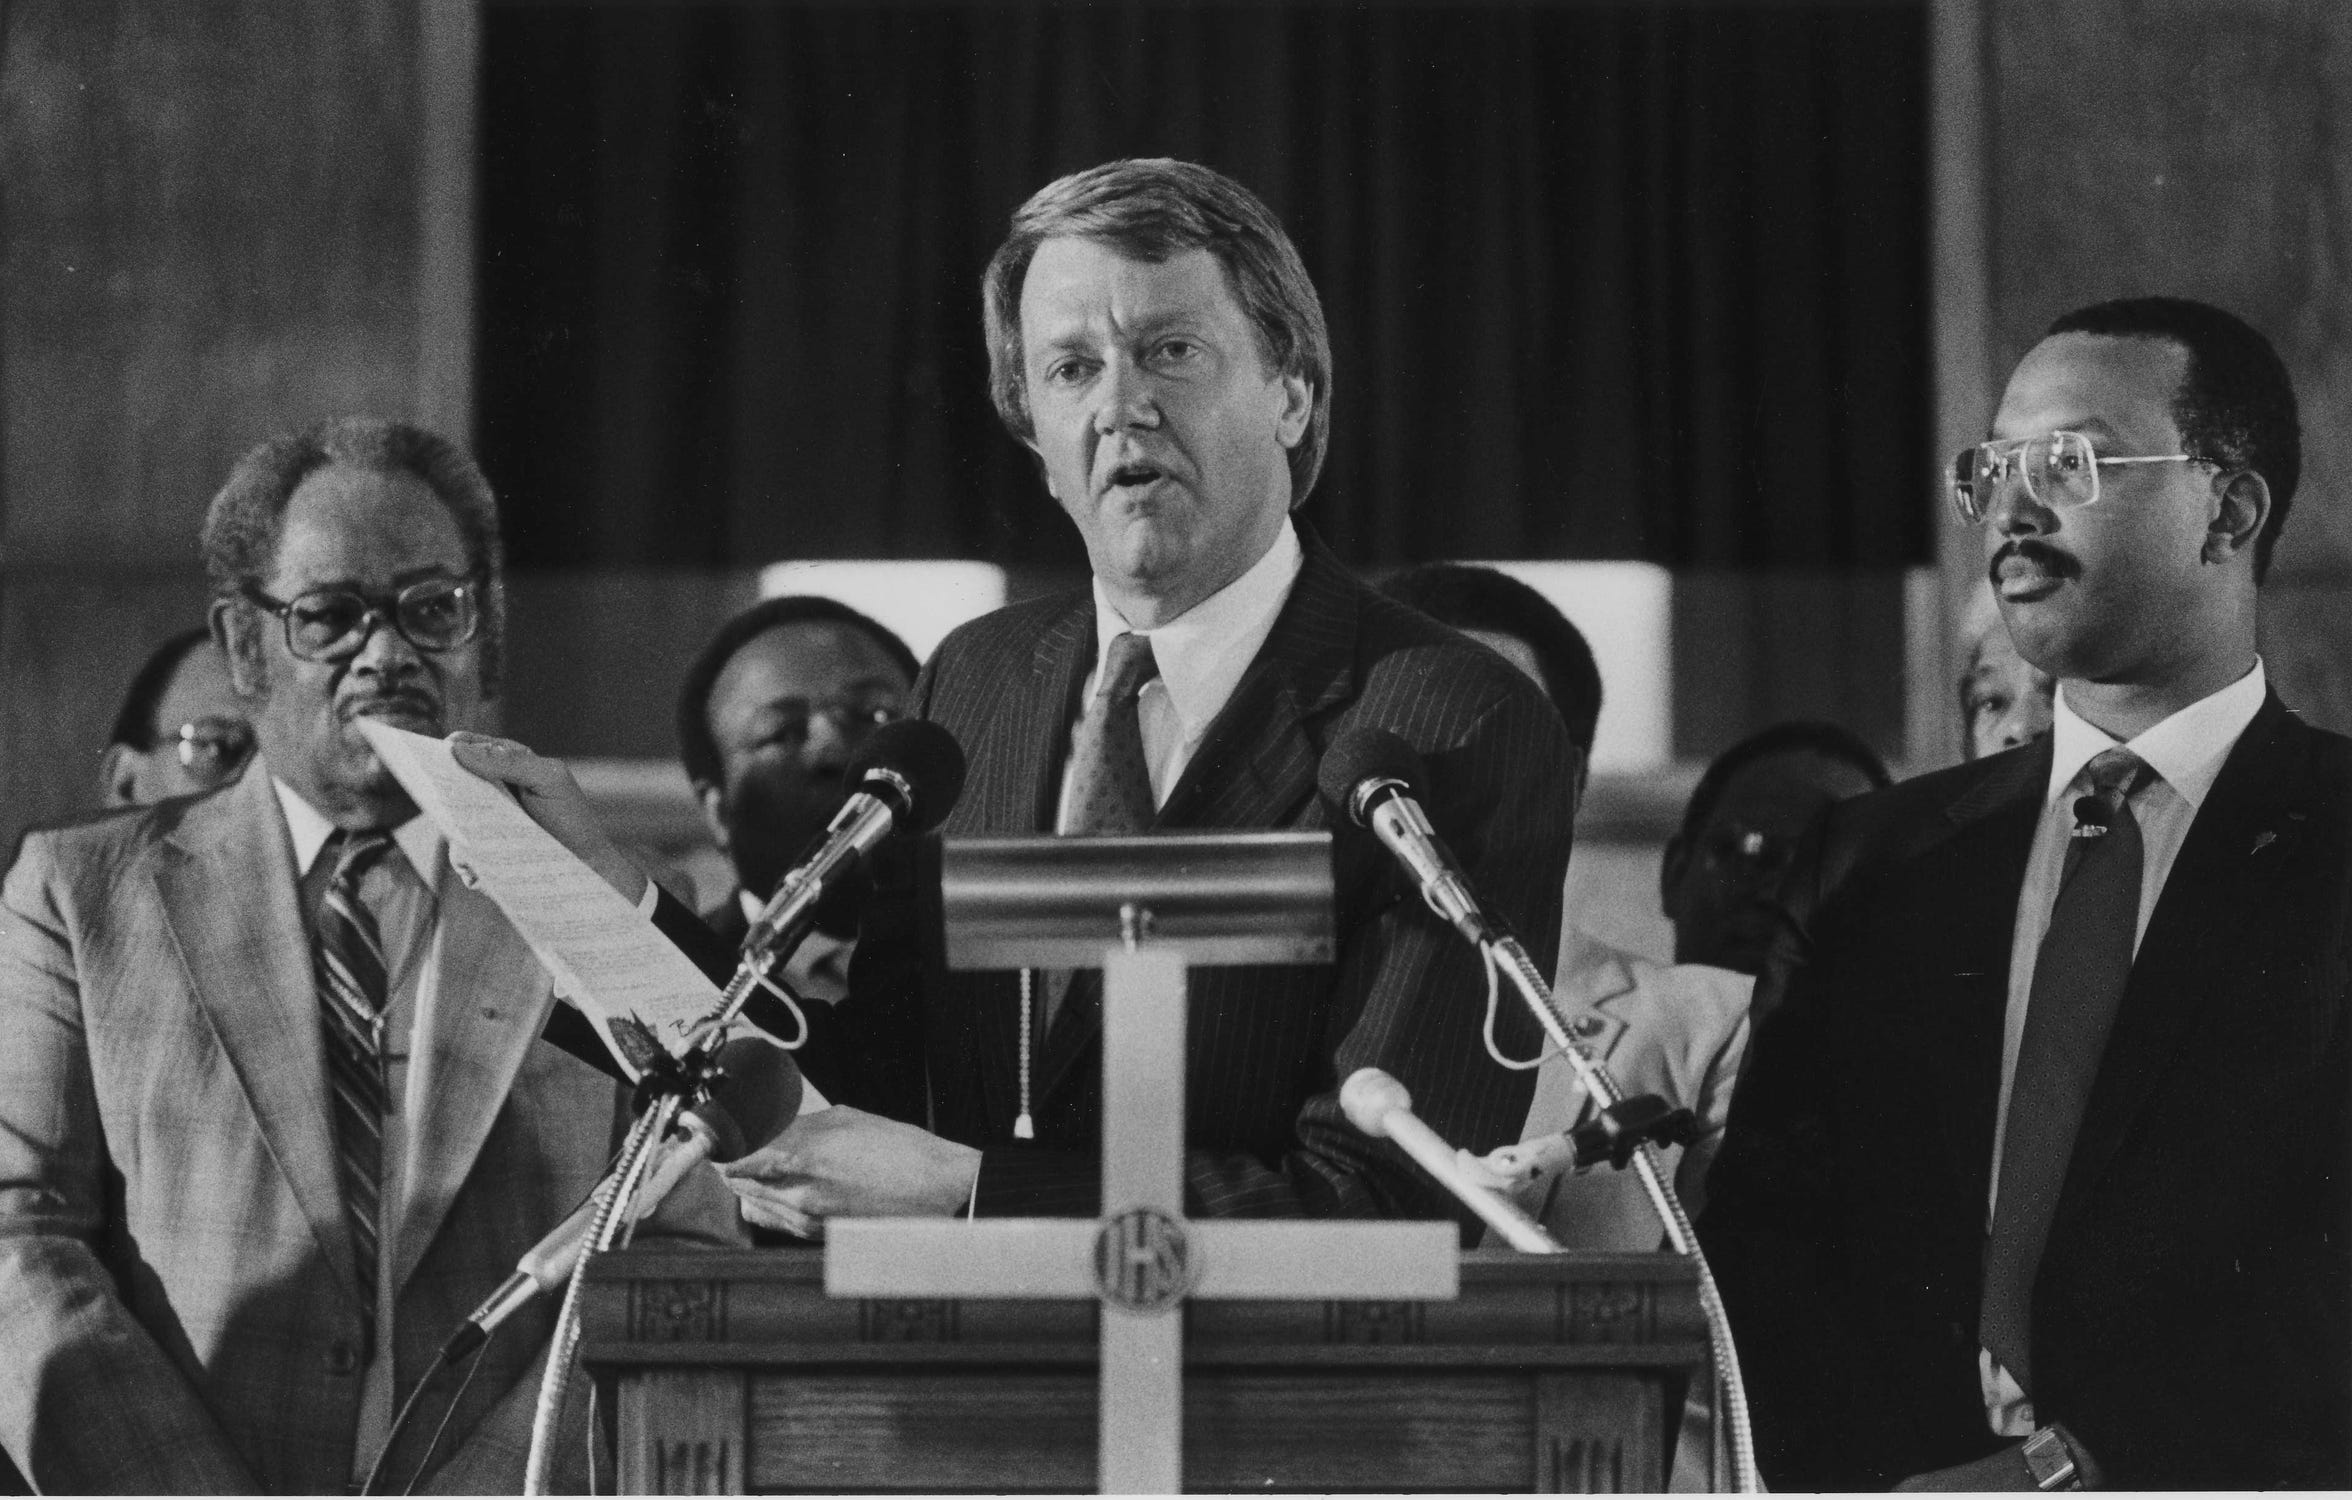 Gov. Bruce Babbitt announces that he had proclaimed Martin Luther King's birthday as a state holiday, in this file photo from May 17, 1986.